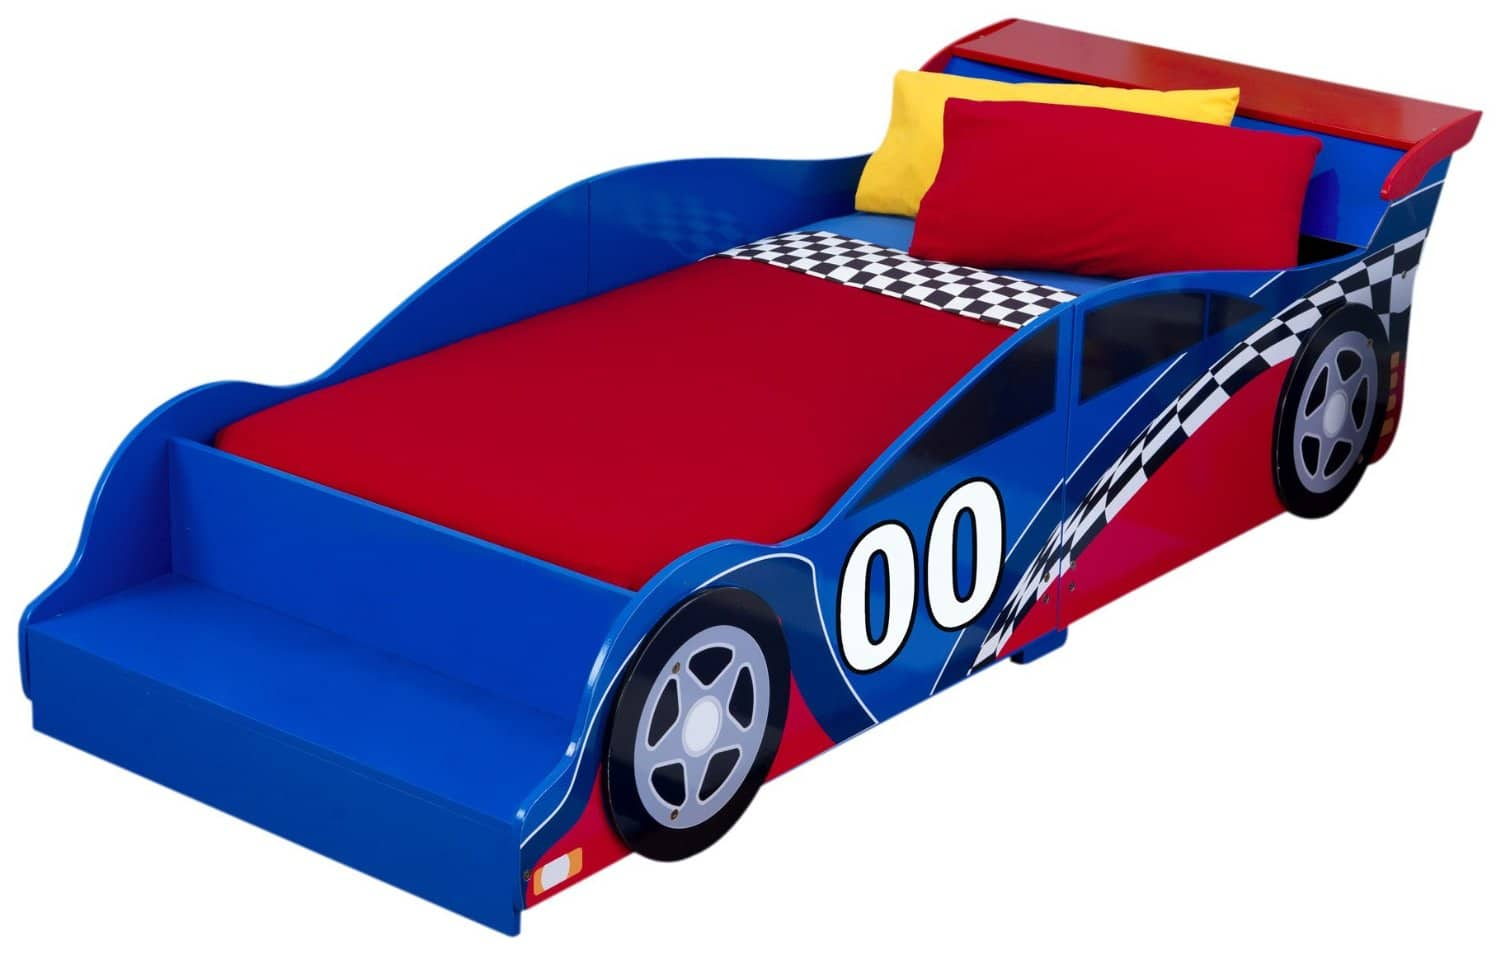 Reviewing The Best Race Car Toddler Bed From KidKraft